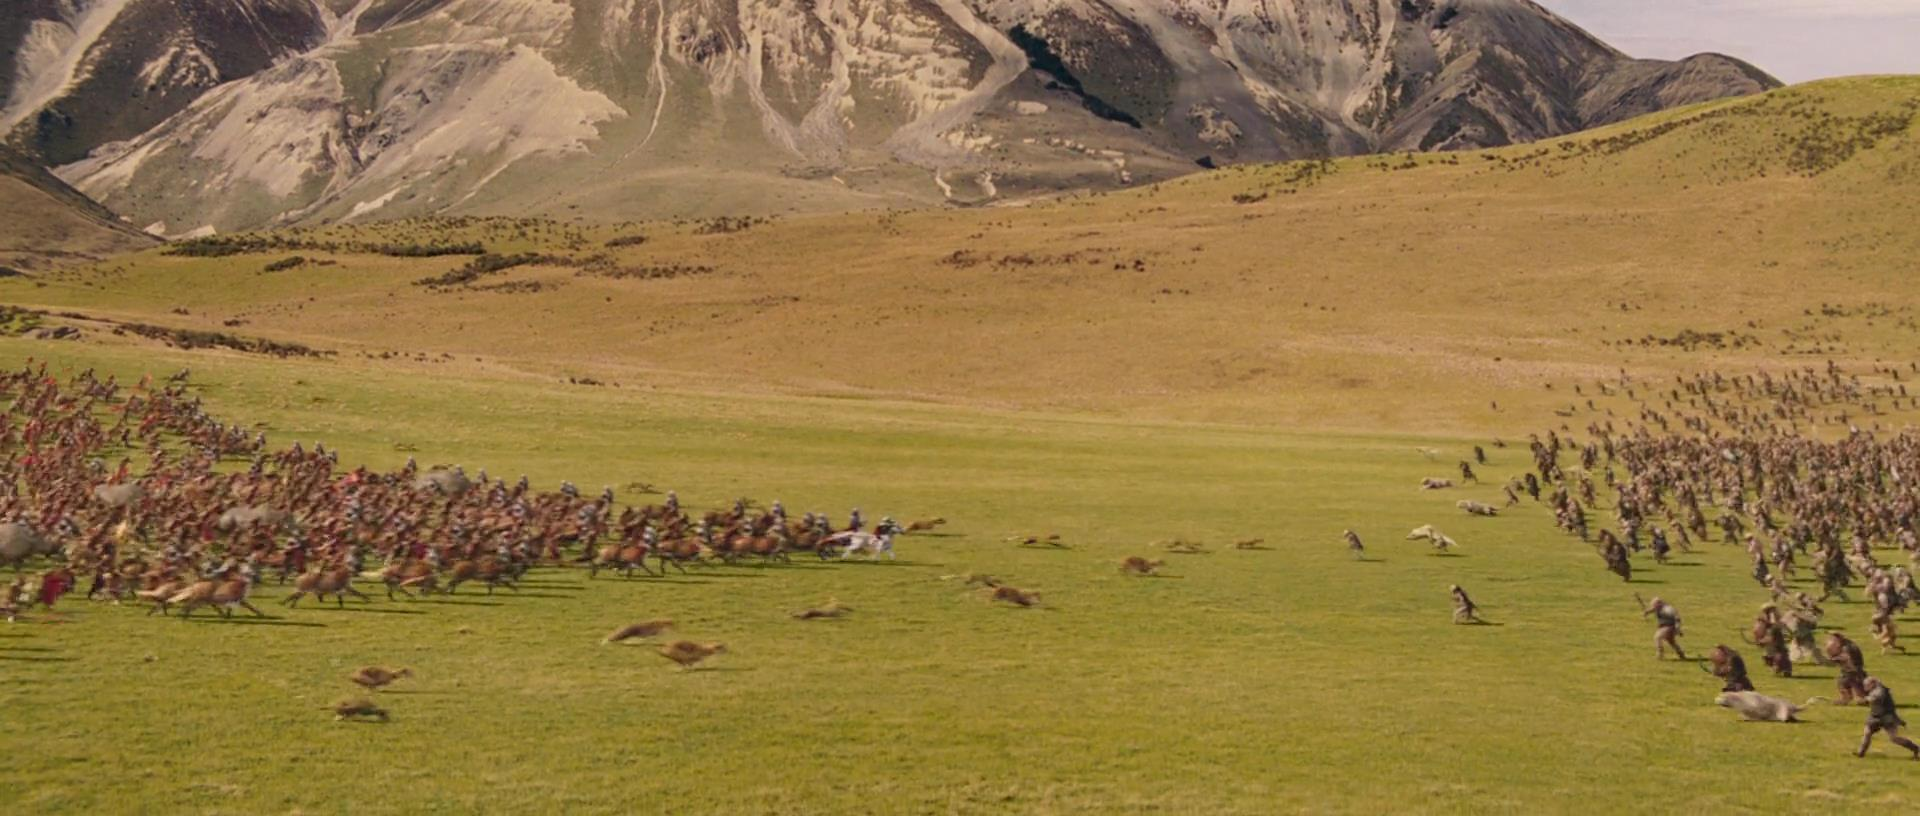 First Battle of Beruna | The Chronicles of Narnia Wiki ...